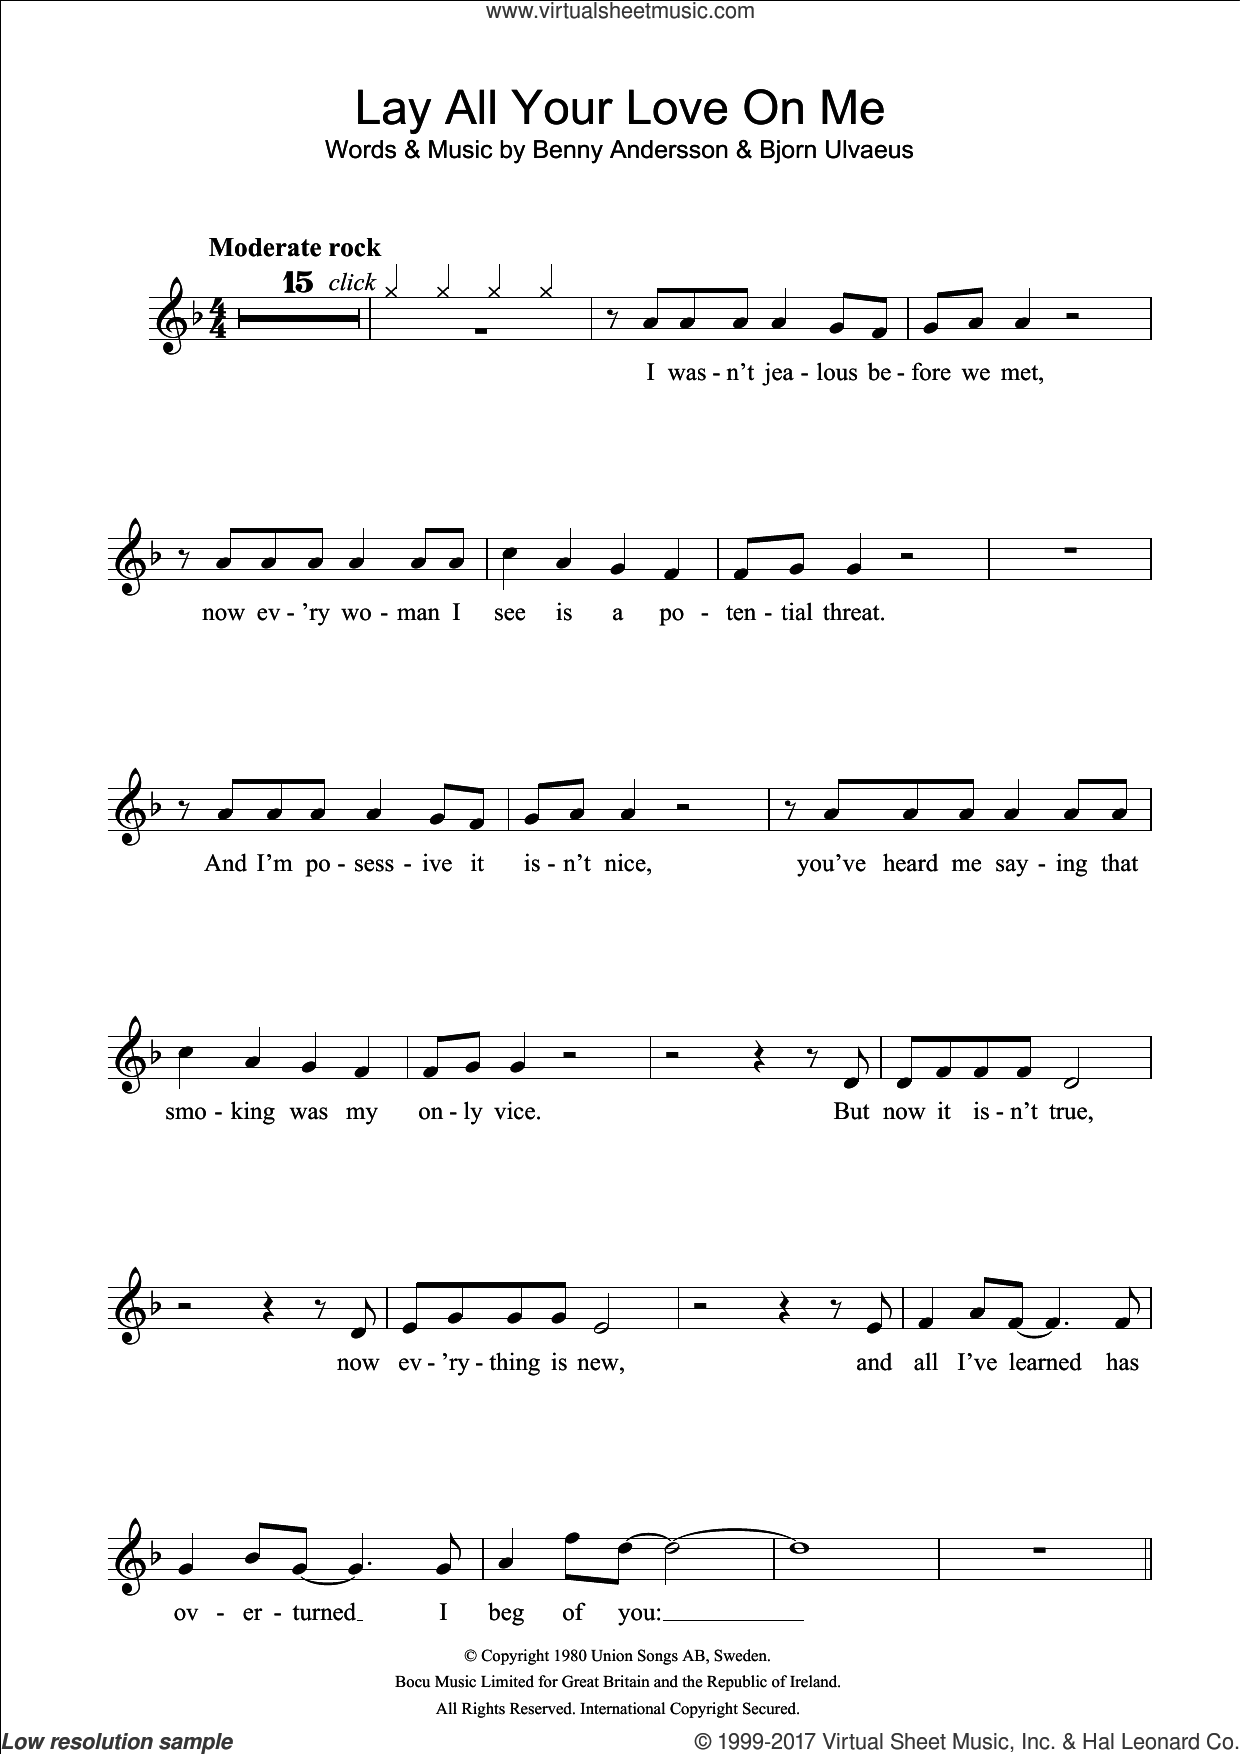 Lay All Your Love On Me sheet music for flute solo by ABBA, Benny Andersson and Bjorn Ulvaeus, intermediate skill level